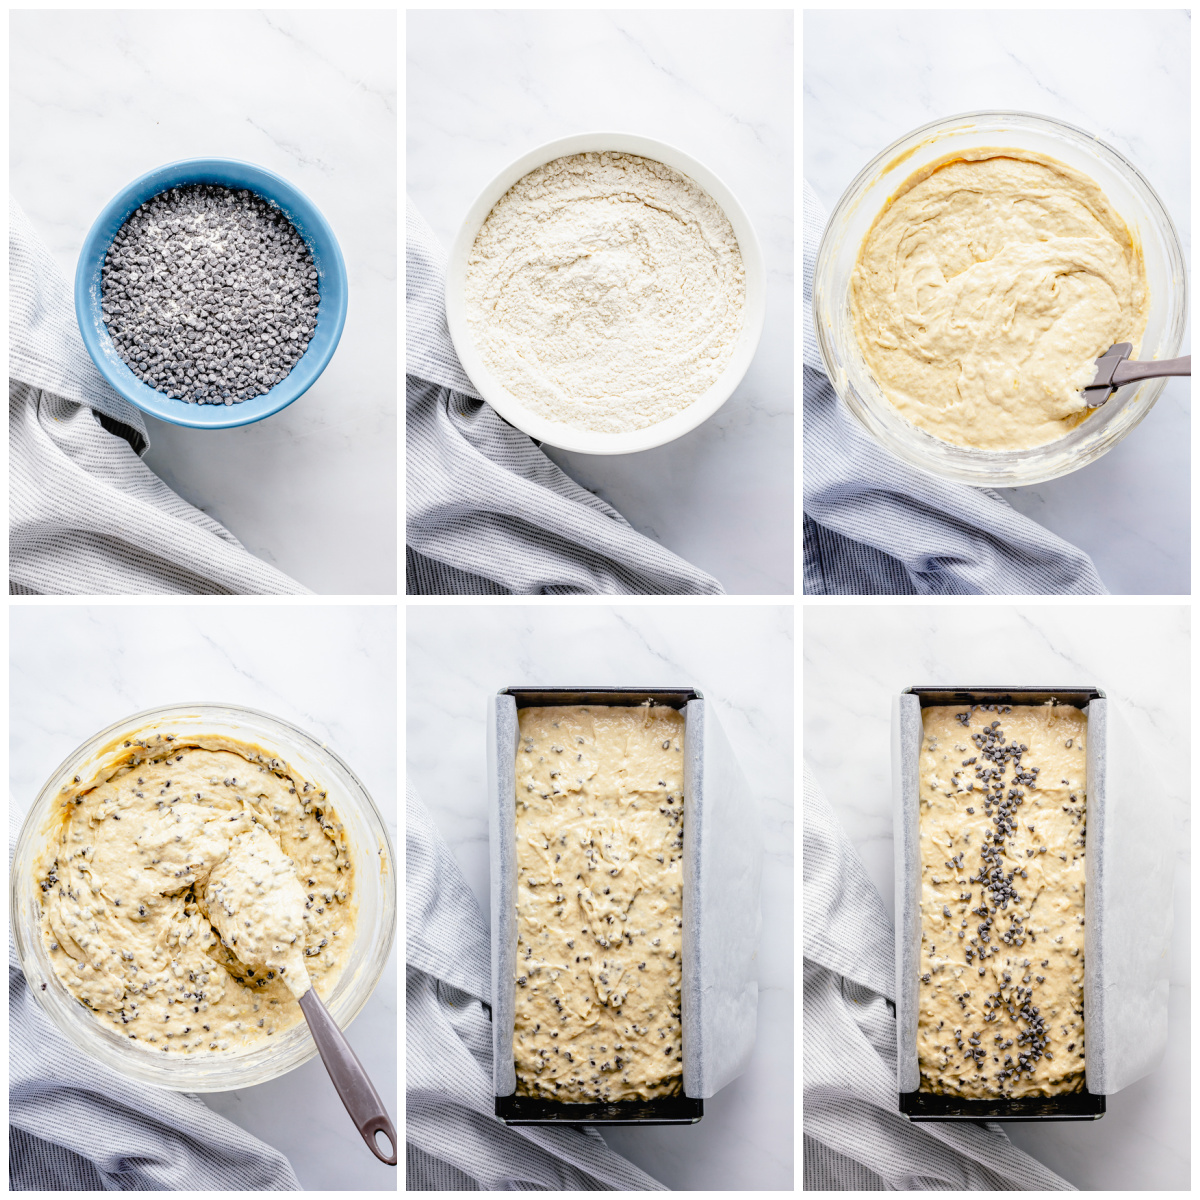 Step by step photos on how to make a Chocolate Chip Banana Bread Recipe.